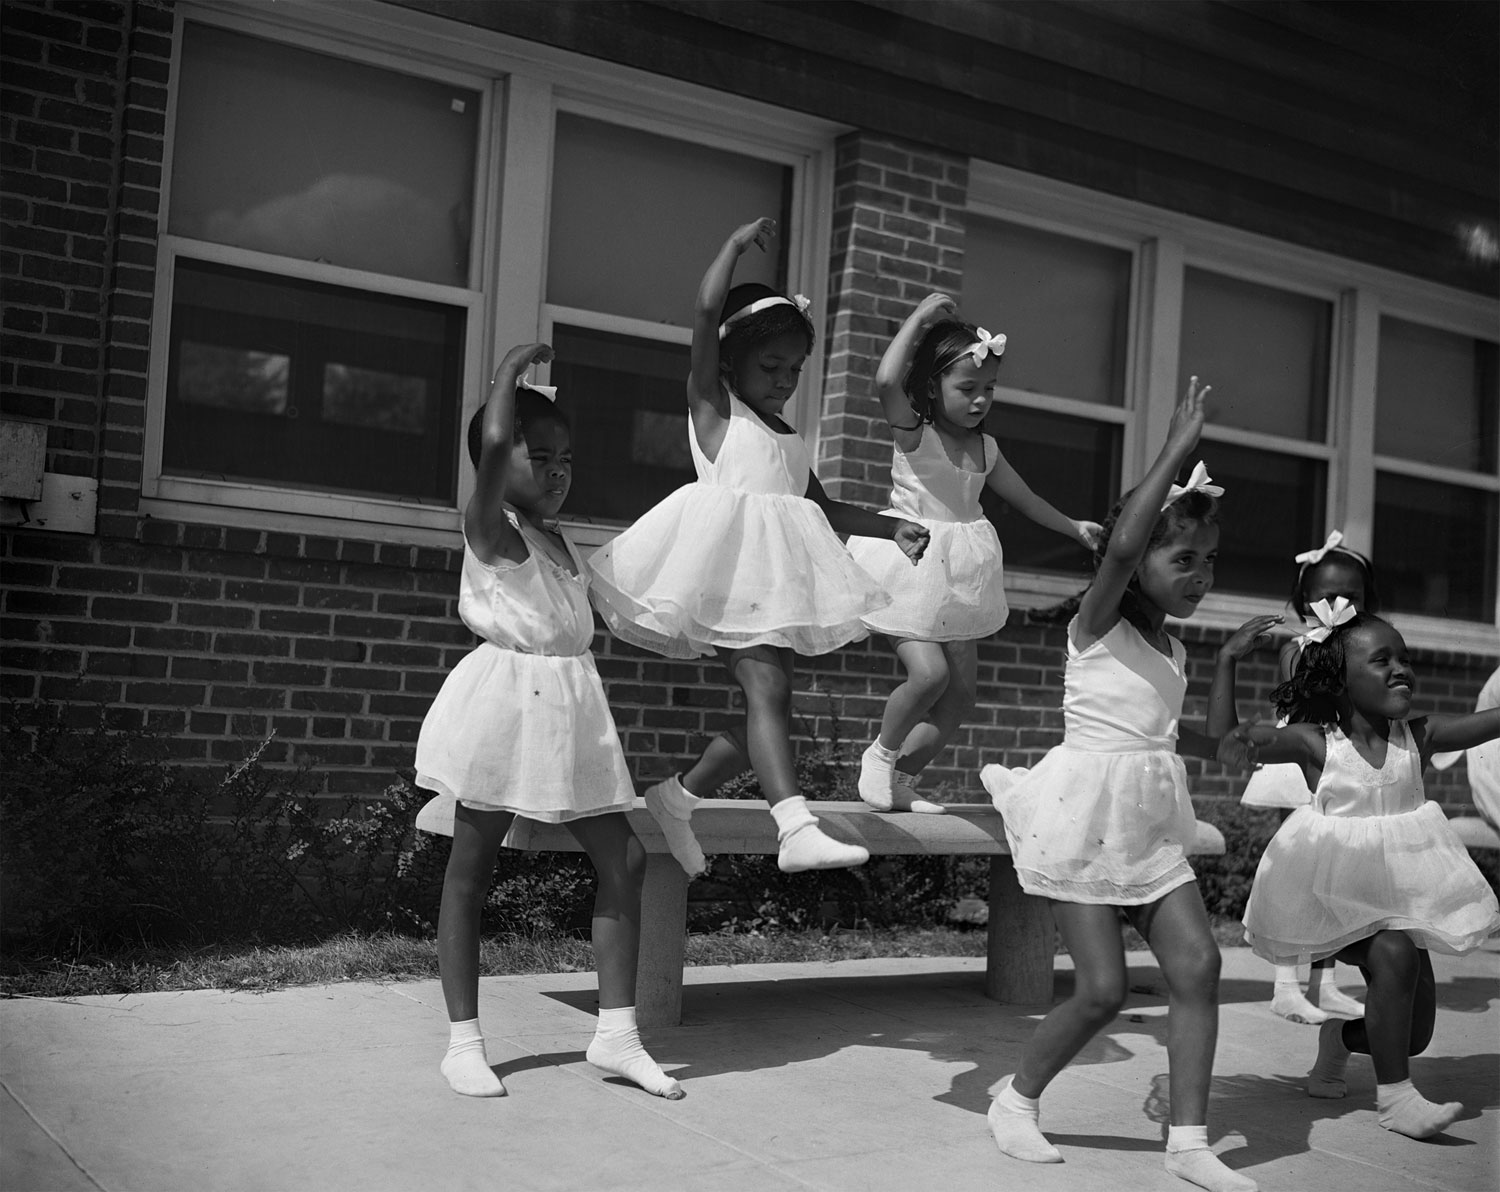 Gordon Parks A Dance Group Frederick Douglass Housing Project Anacostia Washington